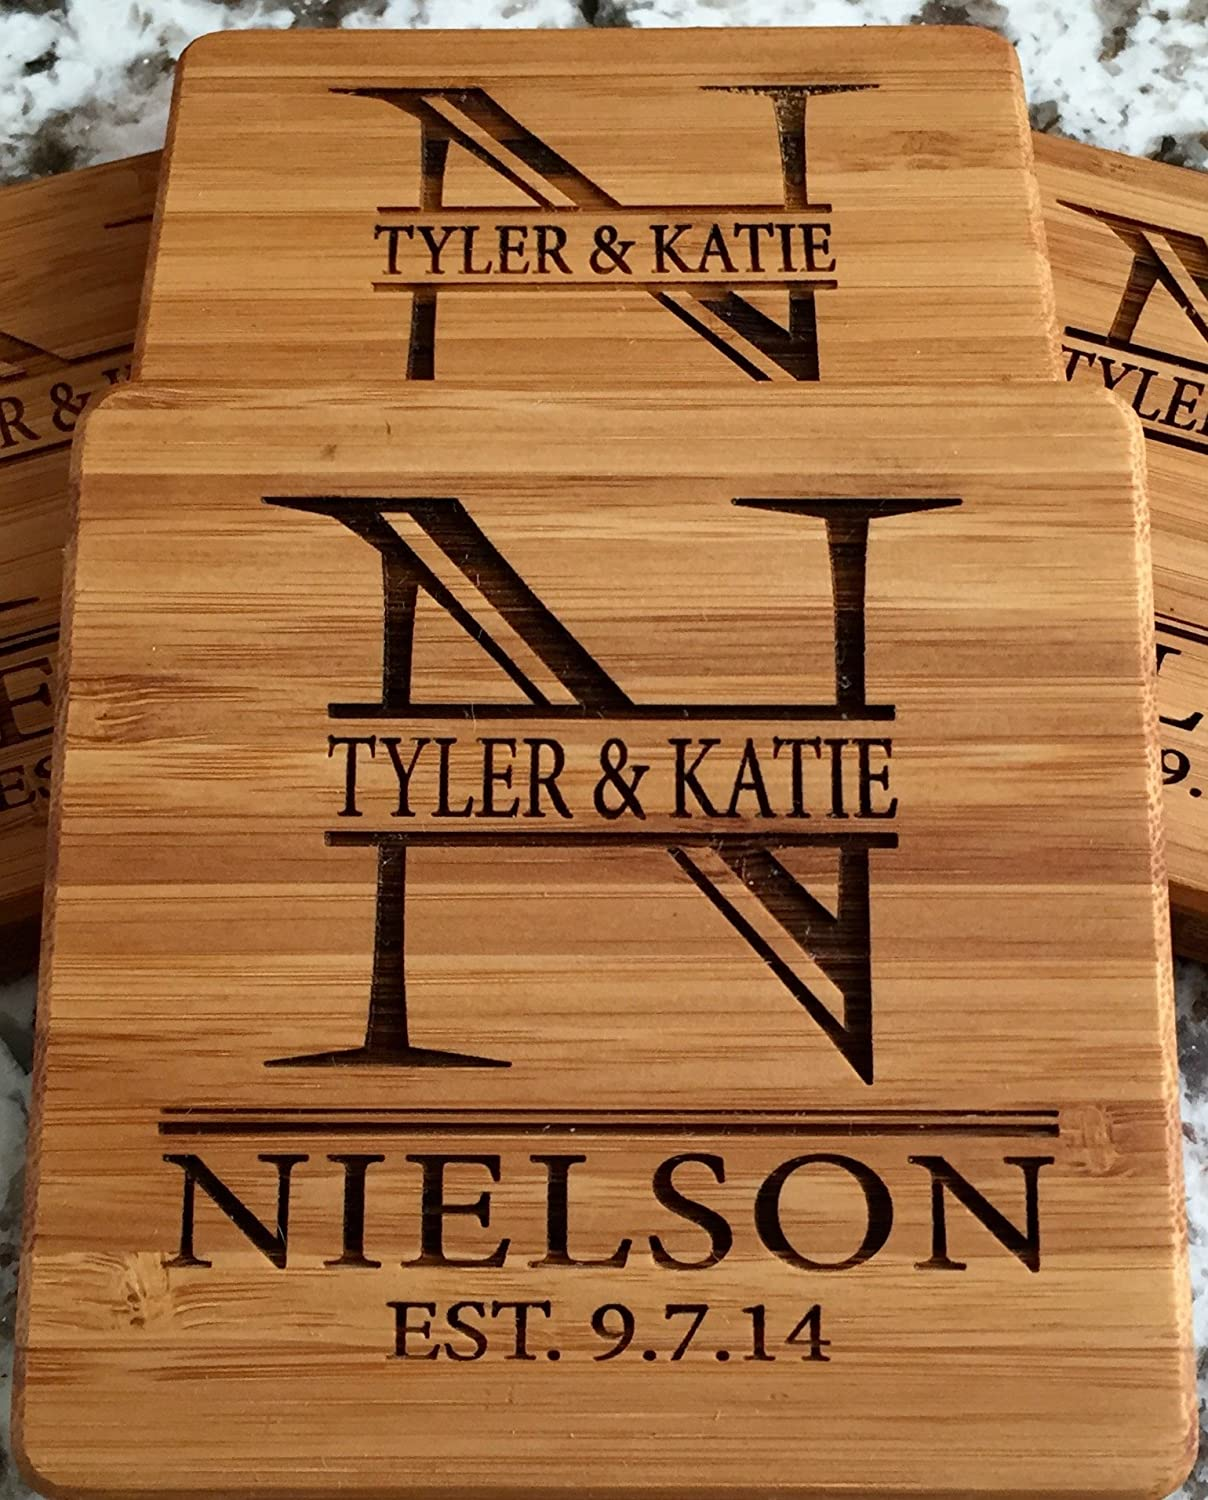 Personalized Wedding Gifts and Bridal Shower Gifts (Nielson Design) - Set of 2 Monogram Customized Wooden Coasters